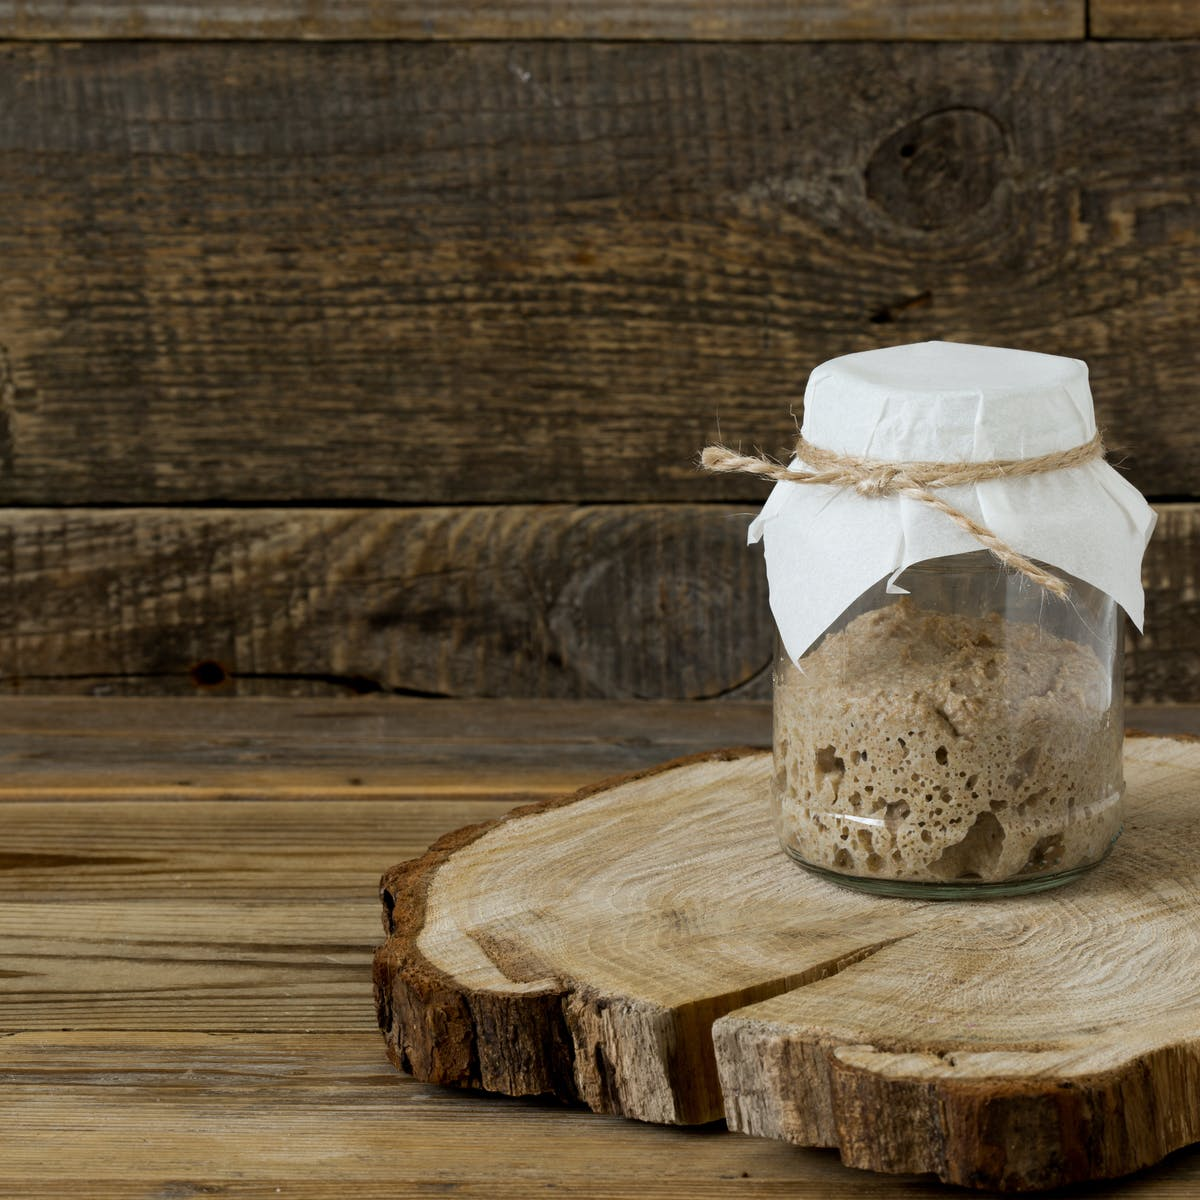 Before Diy Sourdough Starters Became Popular There Was Home Economics